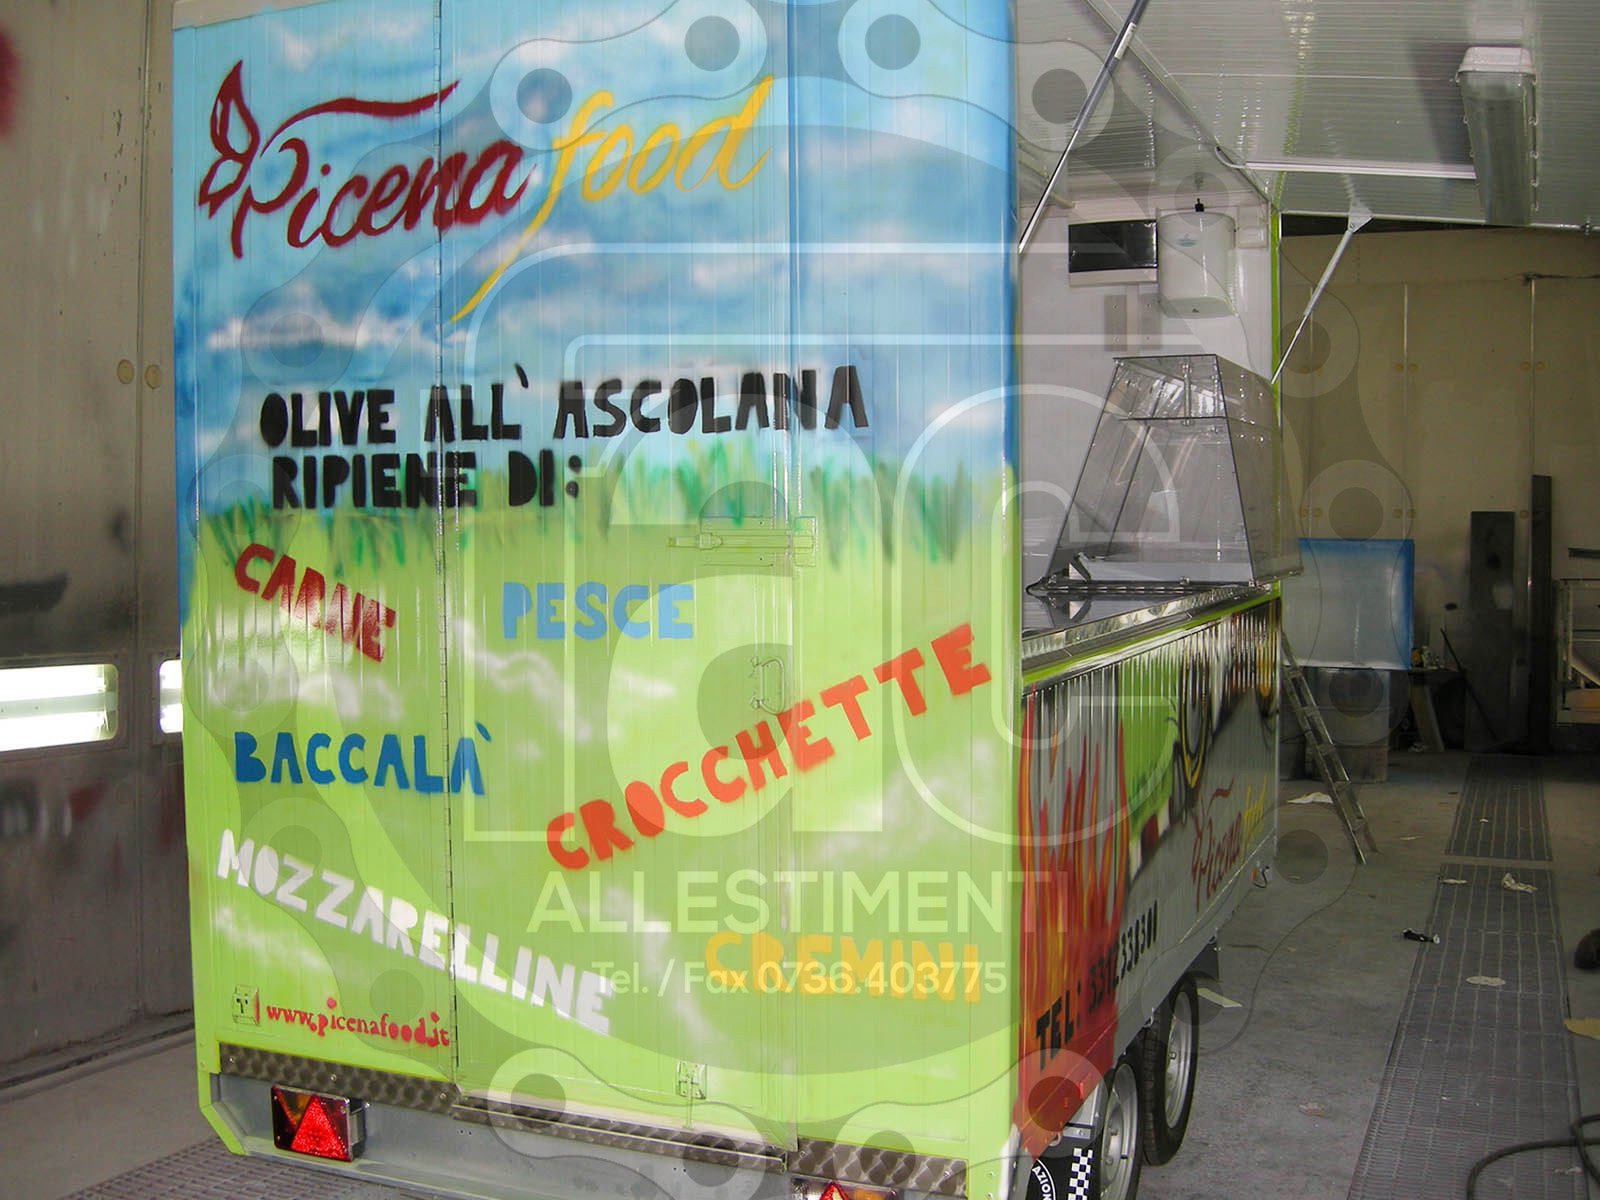 Gallery Picena food